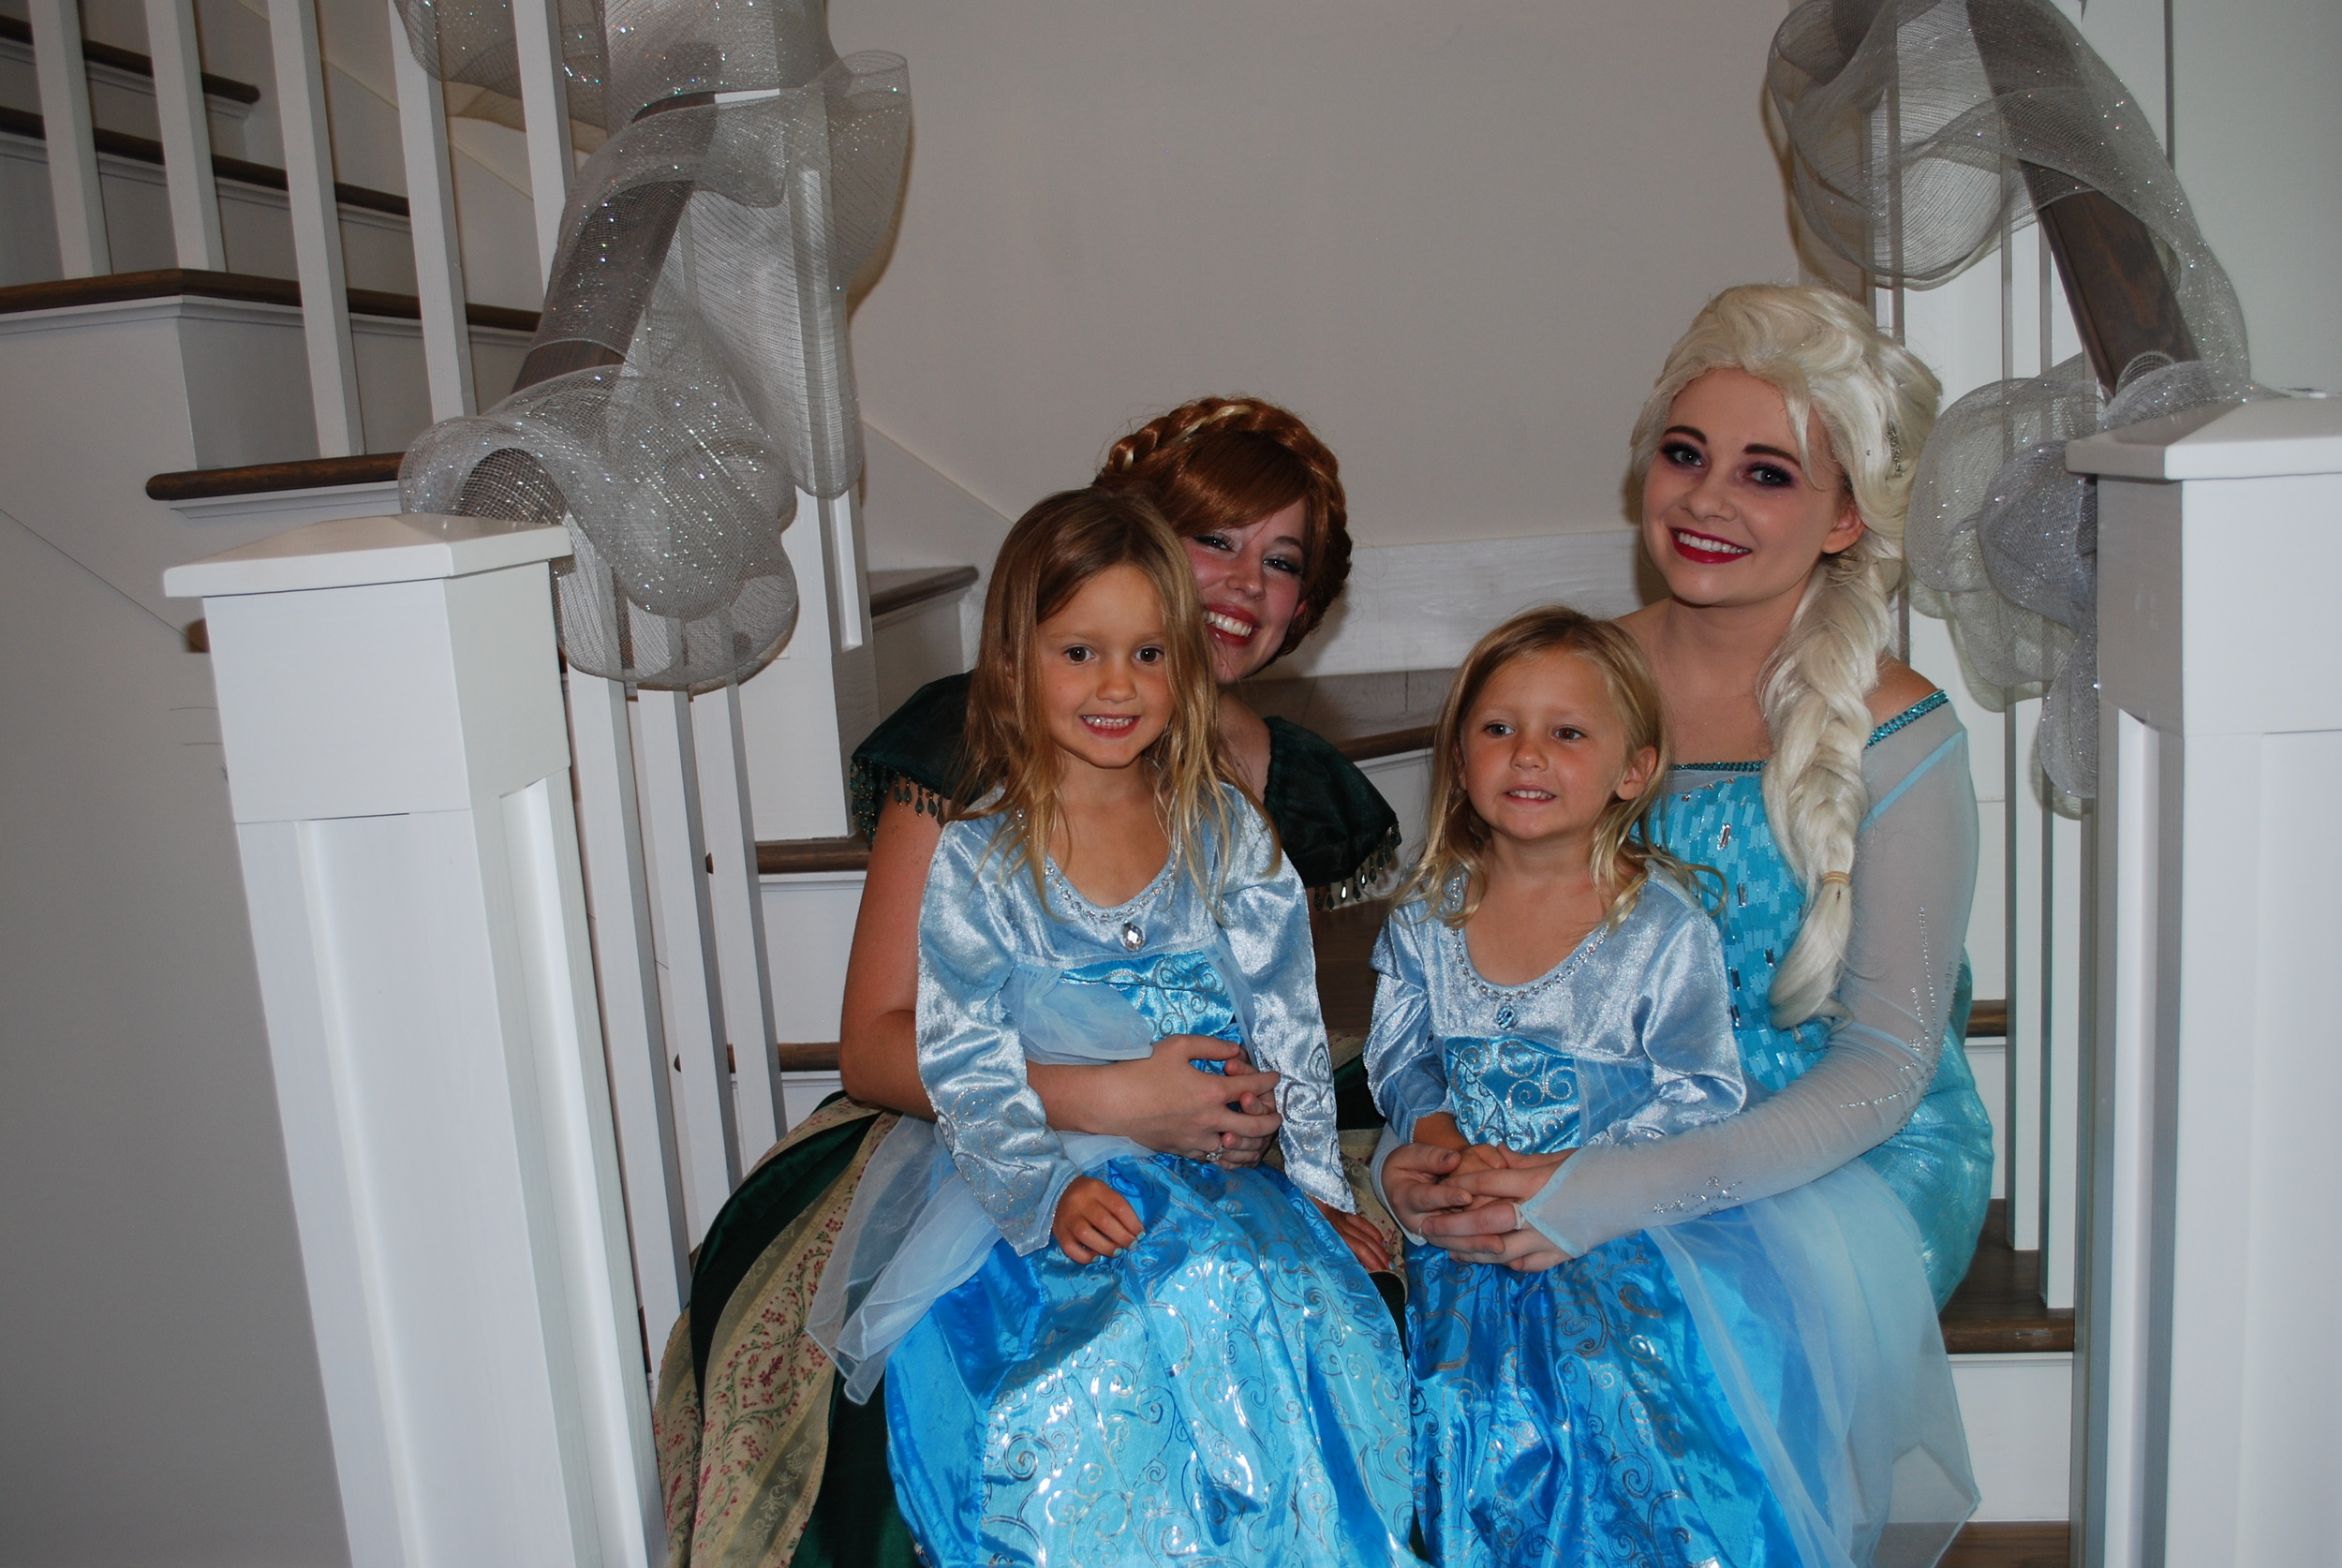 Everyone got to make photos with Elsa and Anna